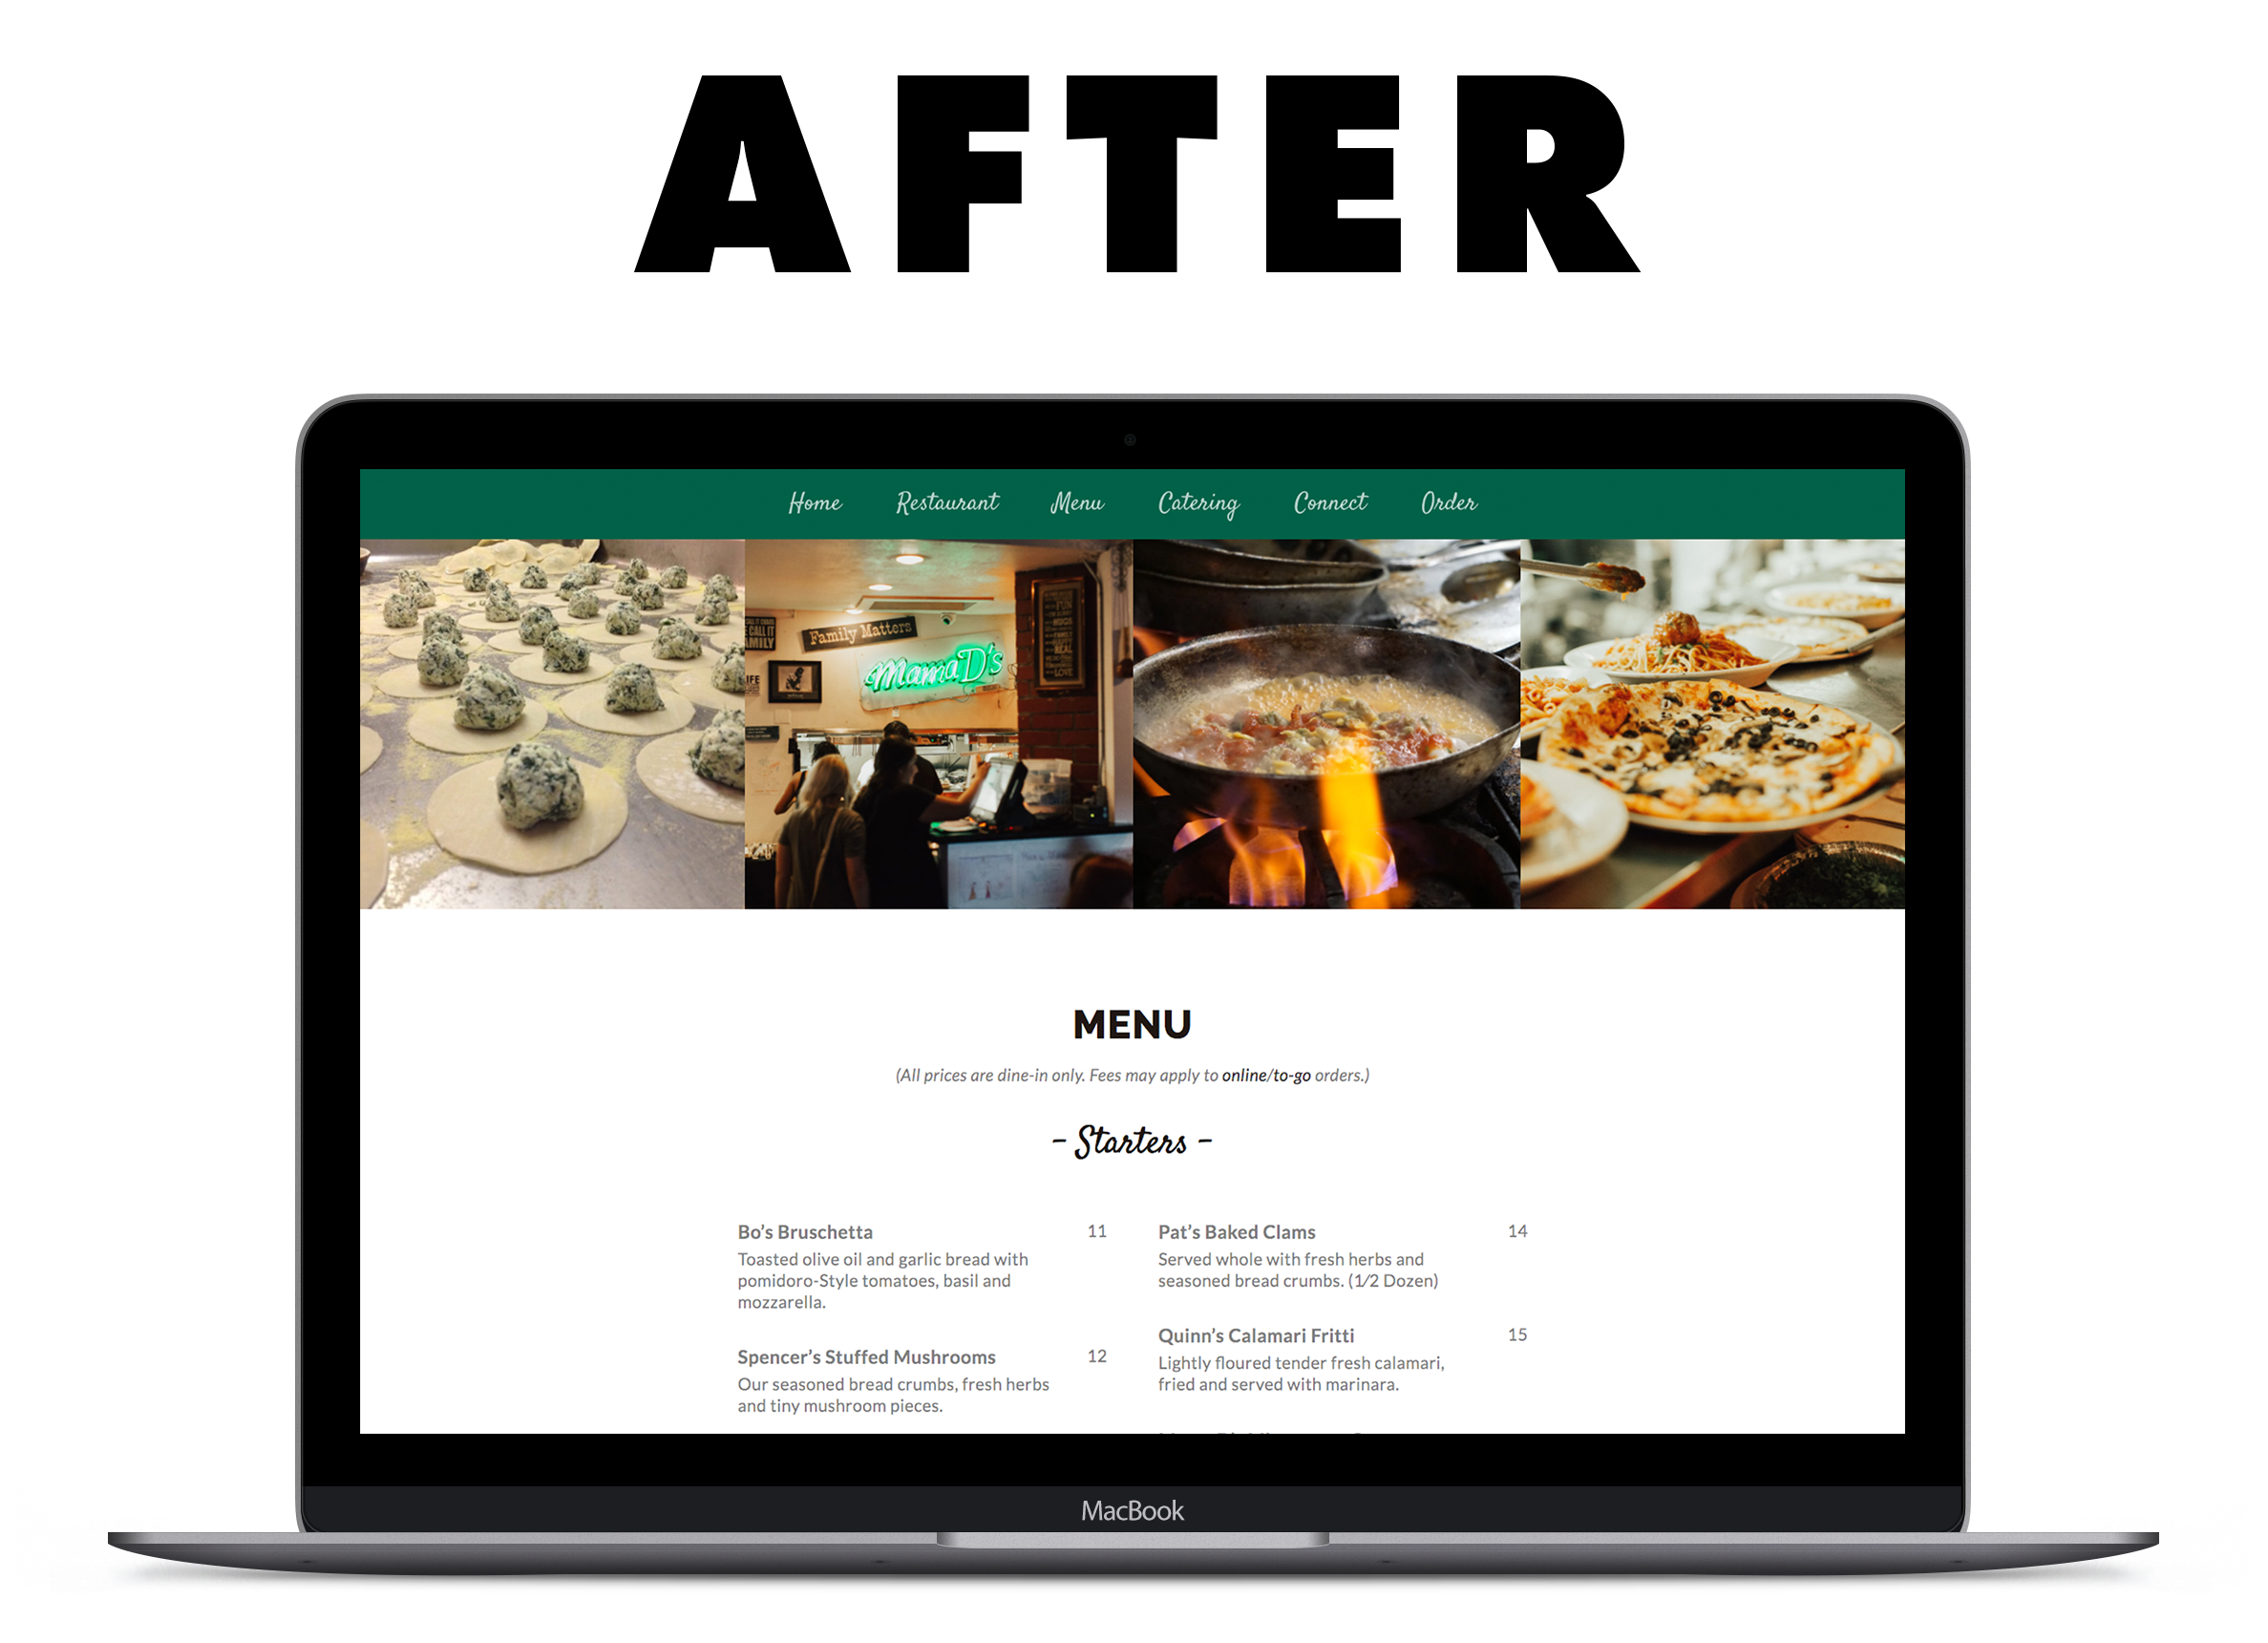 mamads-menu-AFTER- macbook-mock-dribbble-Recovered.png